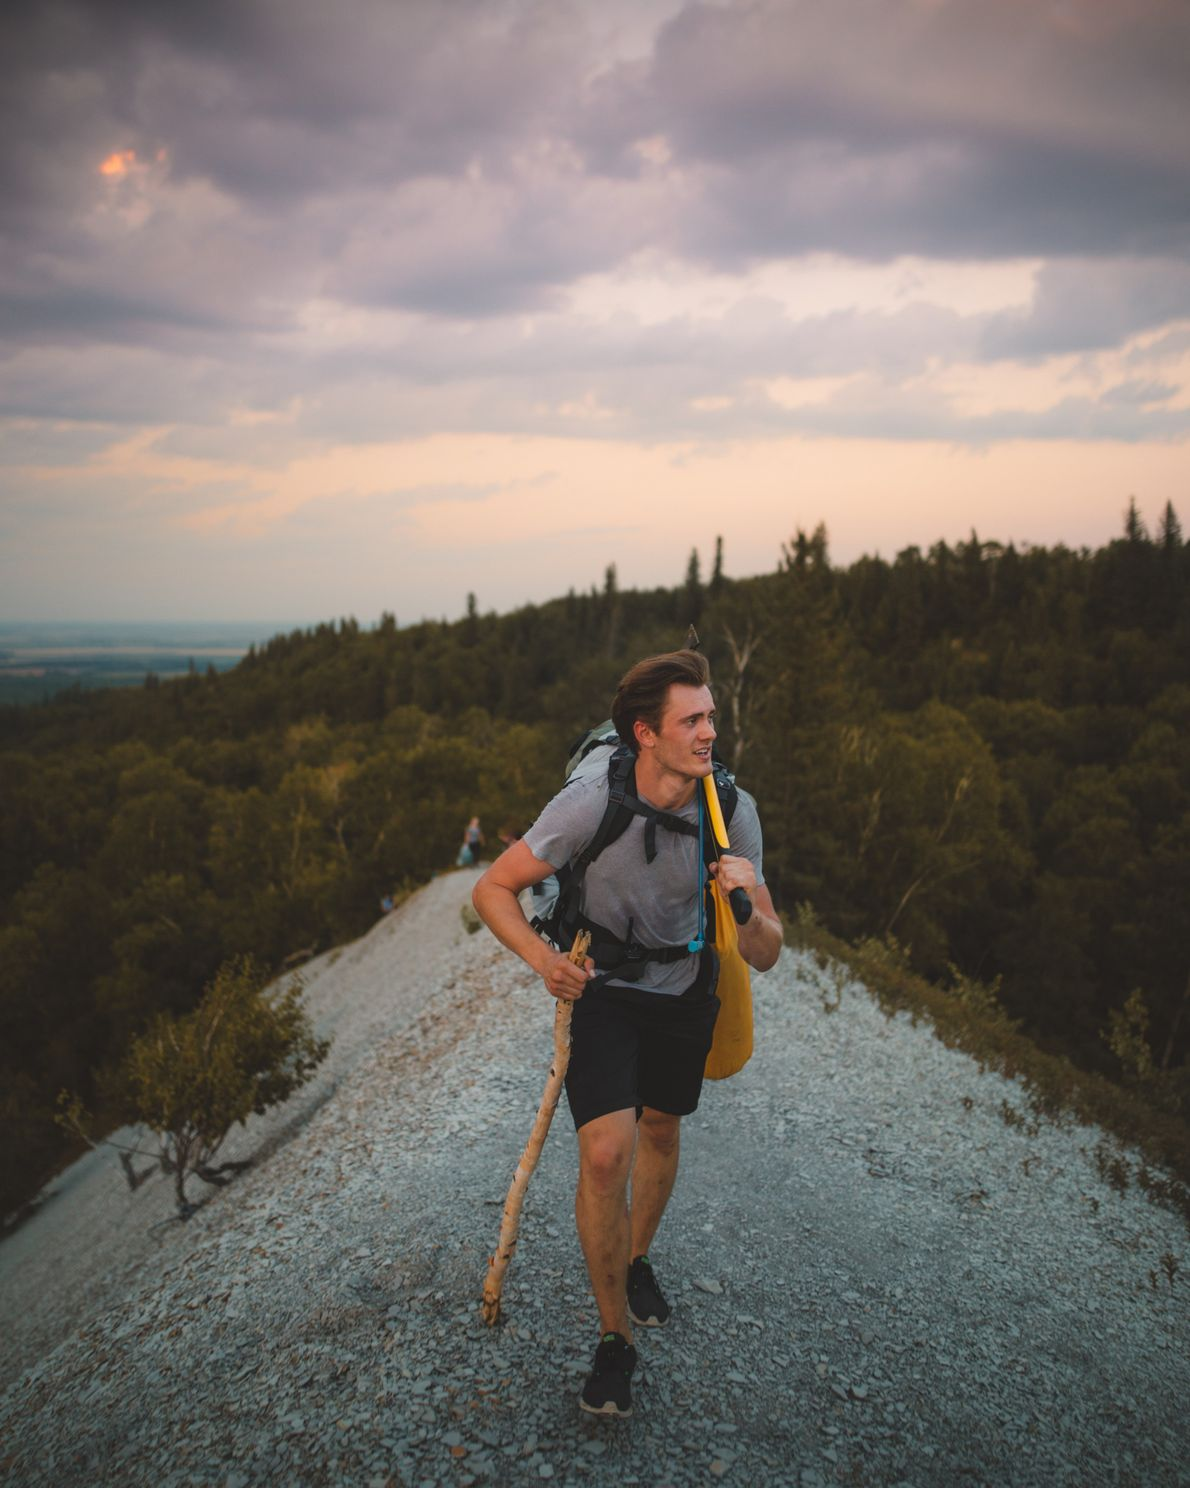 Experience some of Riding Mountain National Park's best hiking trails.